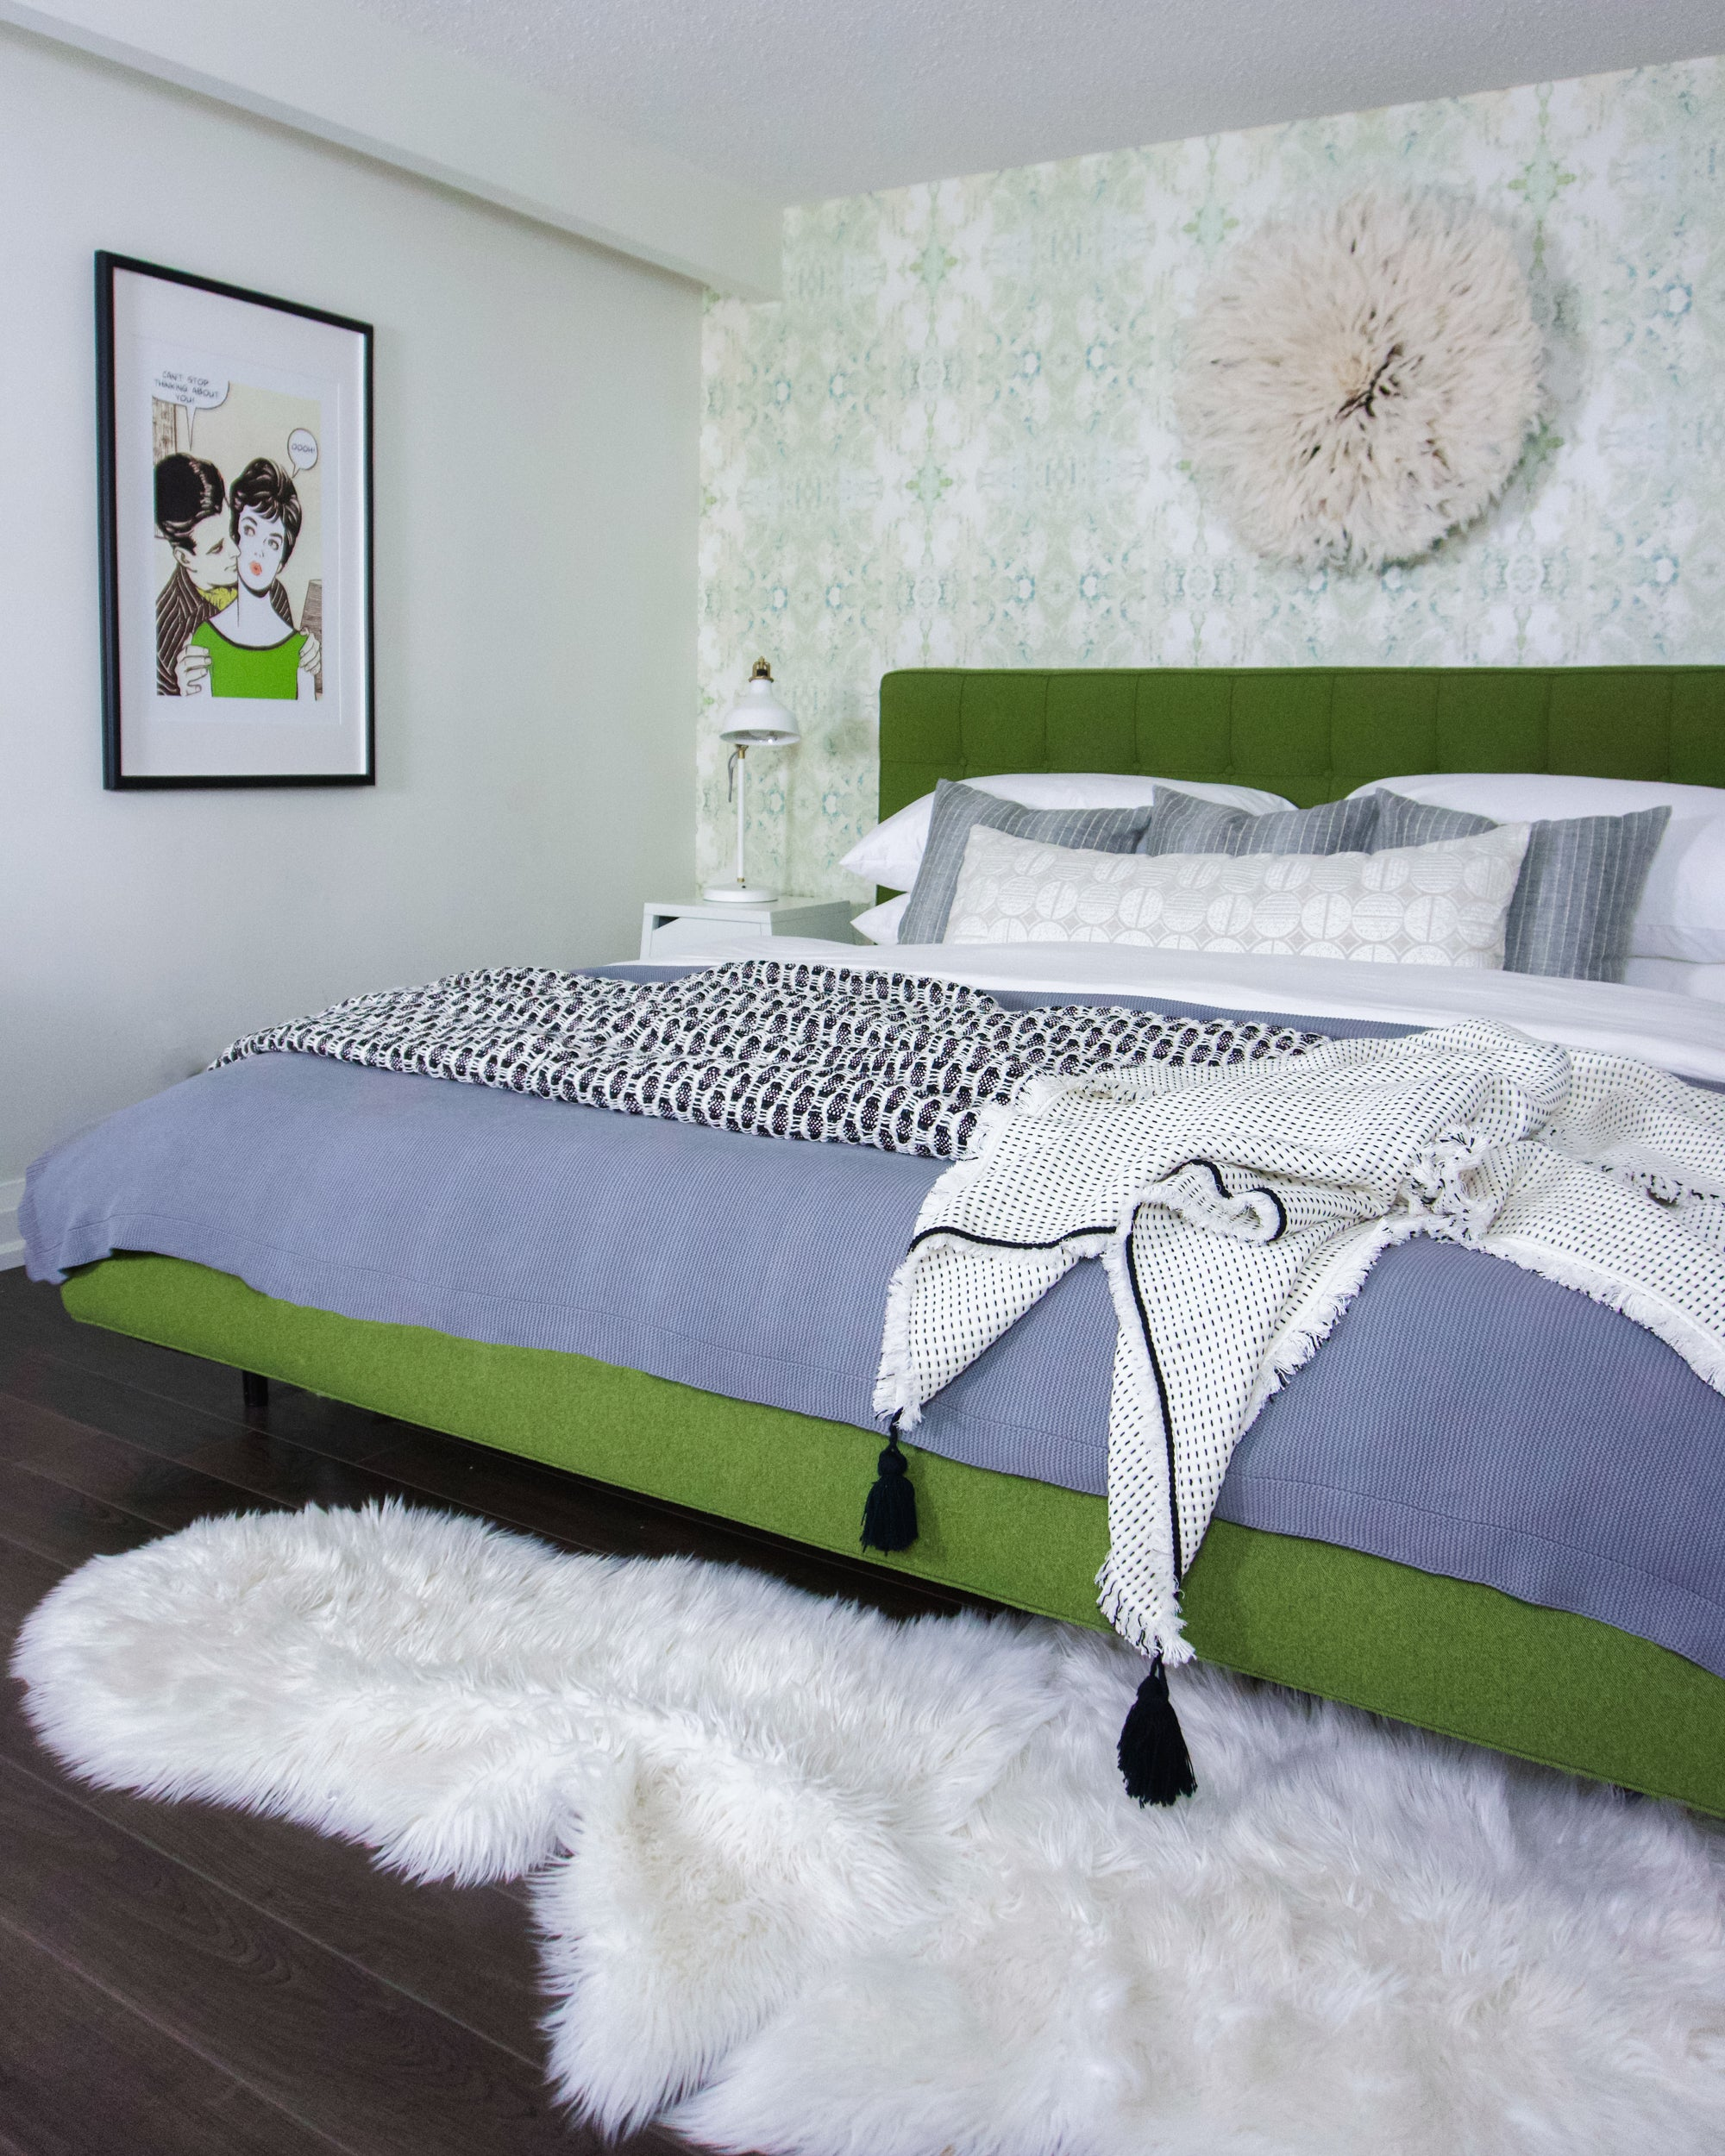 A master bedroom with a shaggy white rug and a pop art frame on the wall